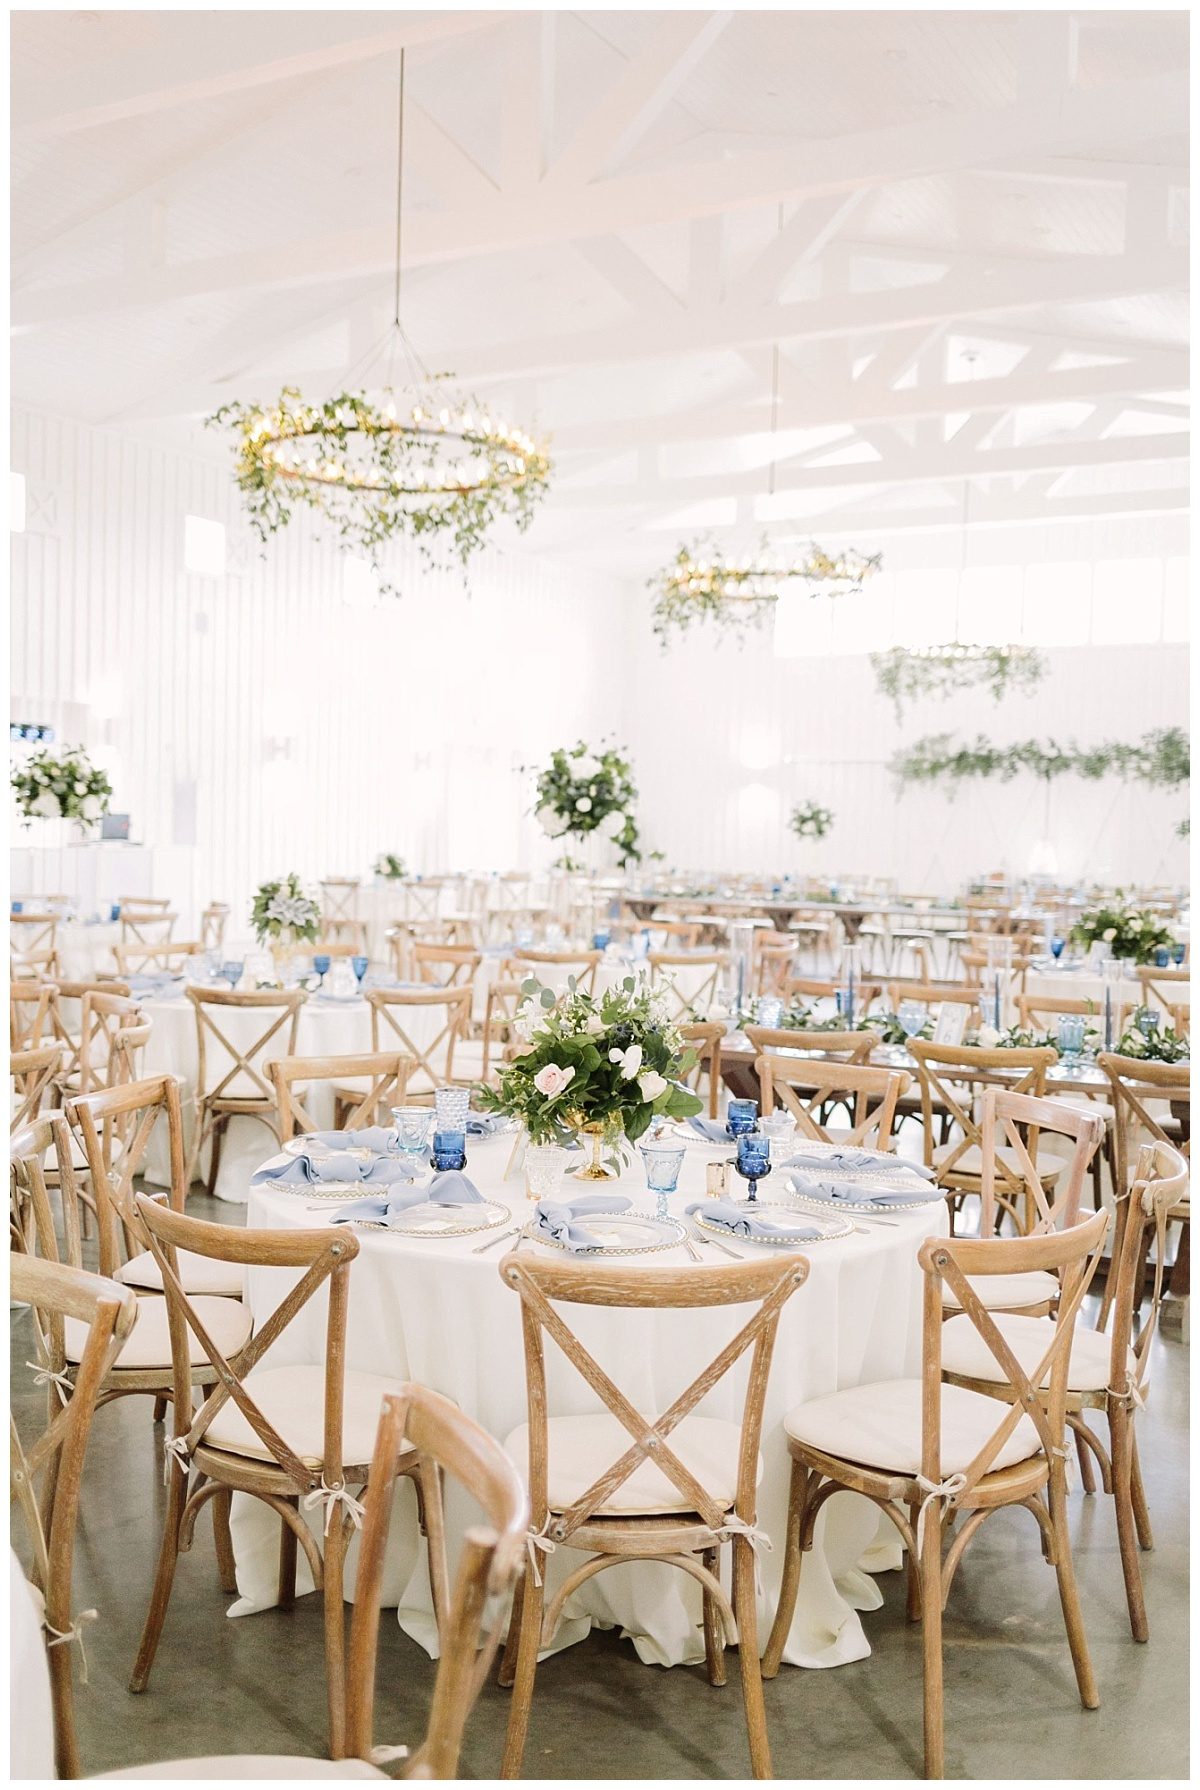 Beautiful view of reception space with tablescapes | The Farmhouse Events Real Weddings| A Little Something Blue| Kelly & Jarrod